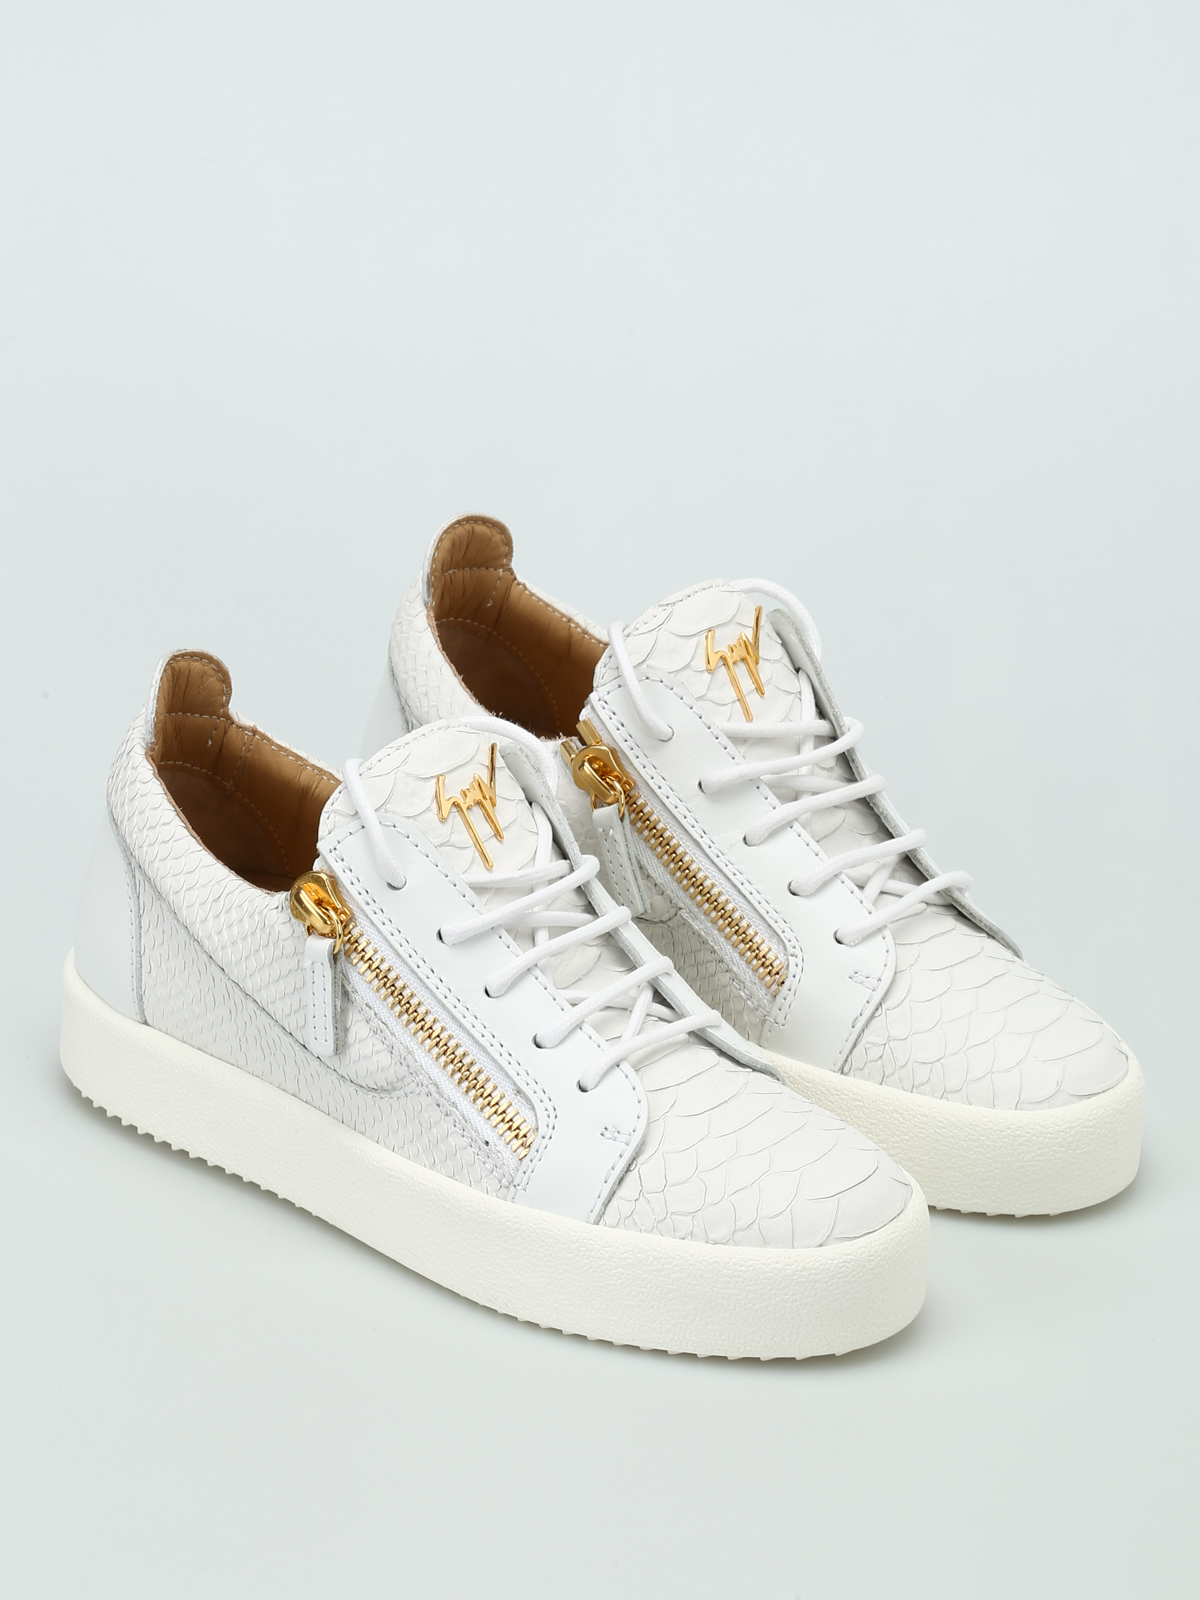 May London printed leather sneakers